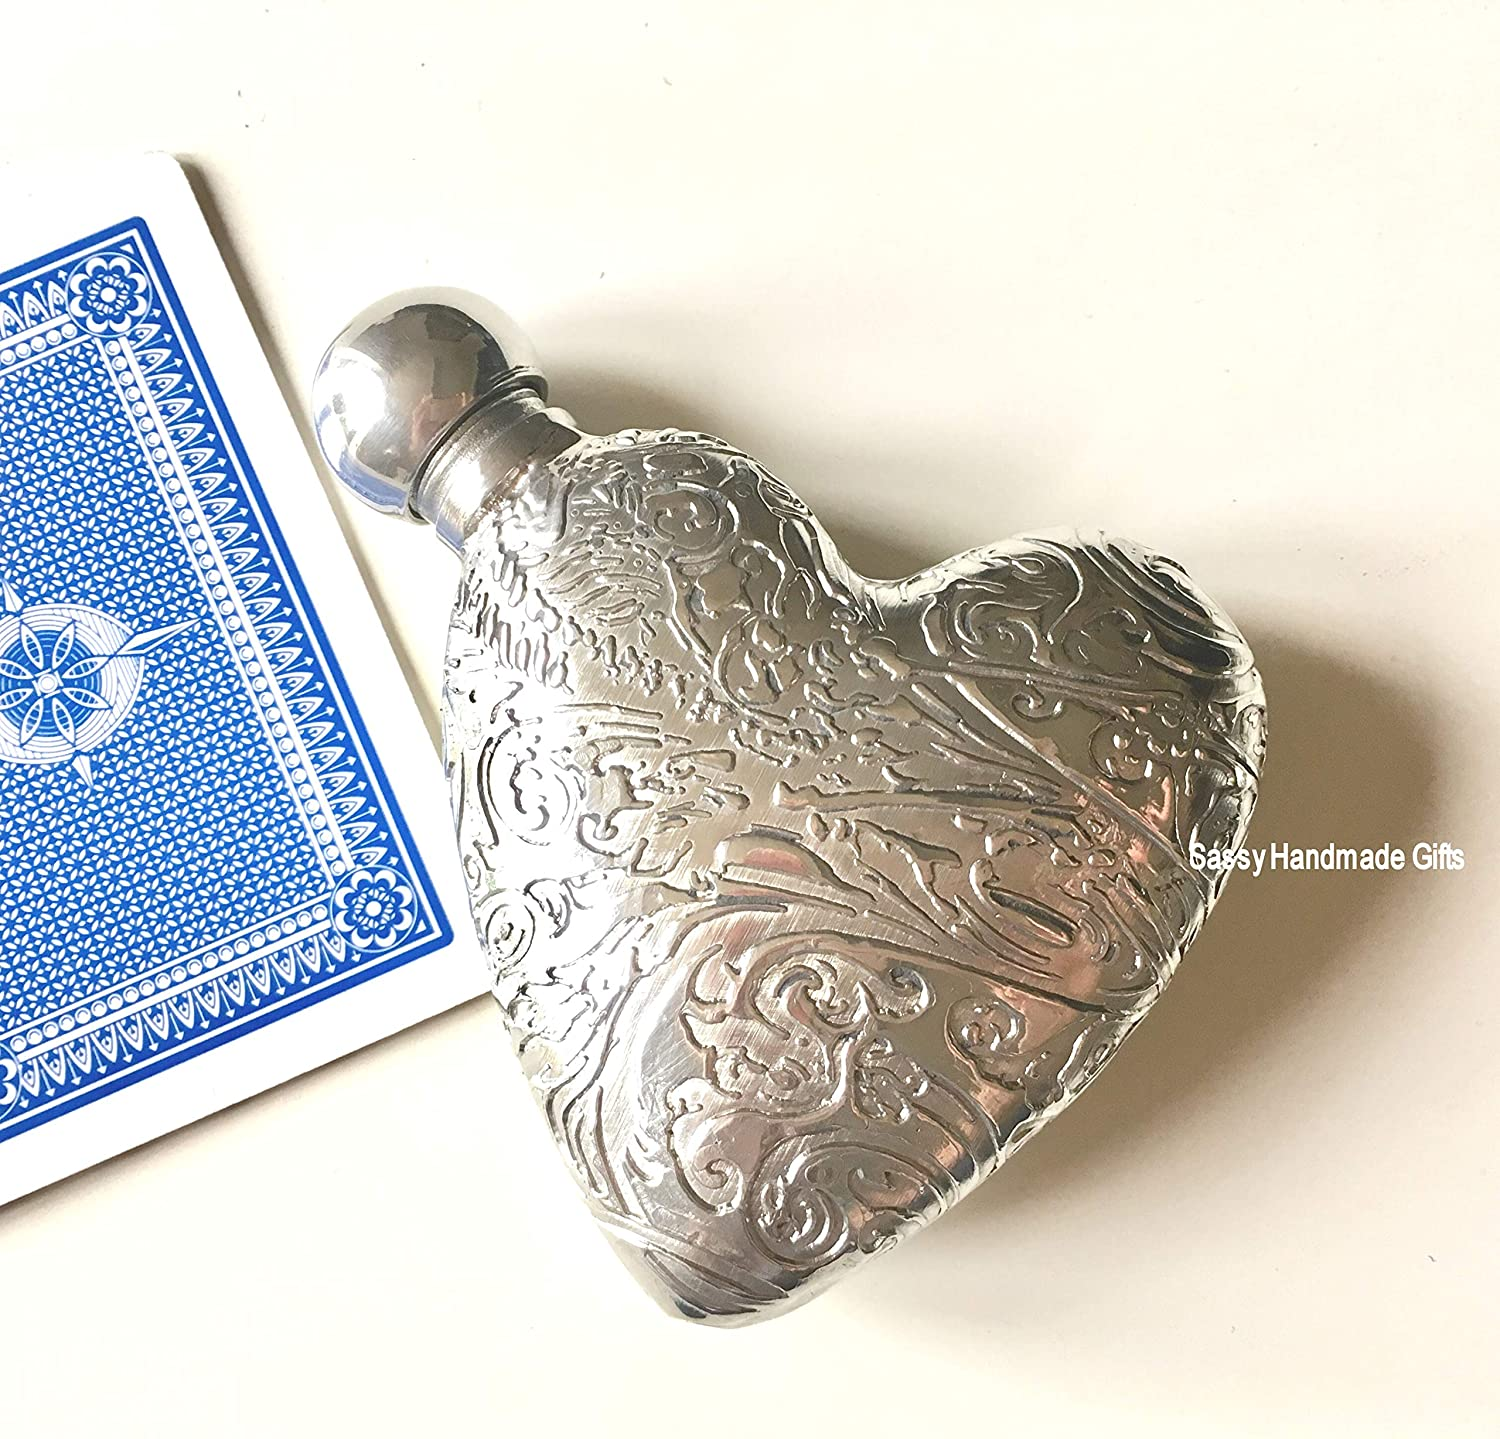 3oz 3D Plain Heart Shaped Quality English Pewter Hip Flask for Valentines Day by Sassy Handmade Gifts /®